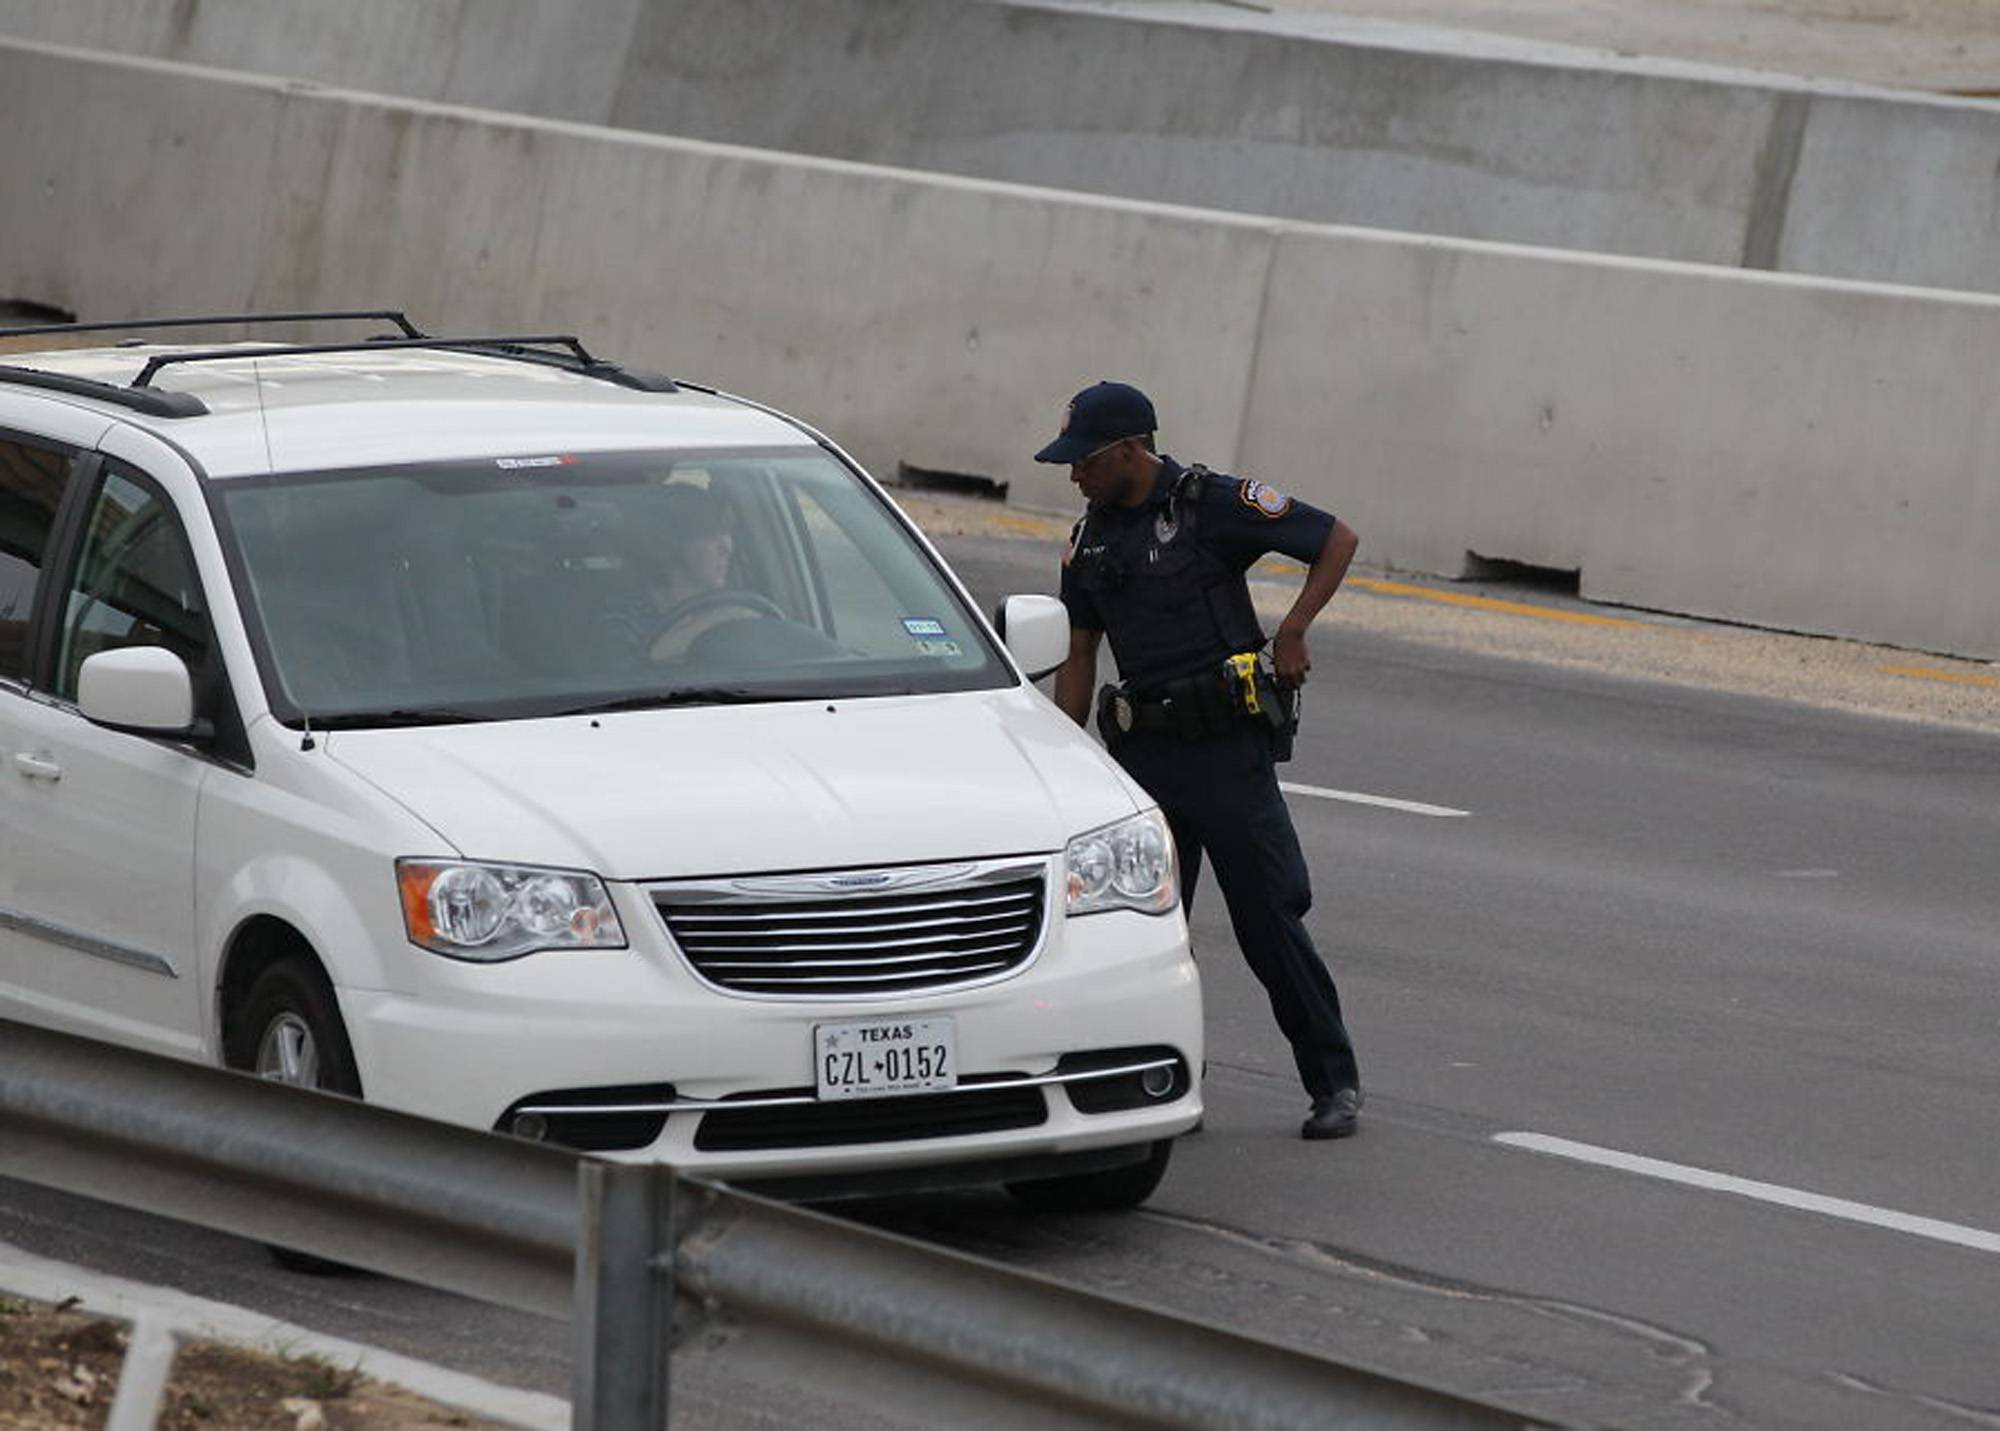 A police officer checks drivers' IDs outside the main gate at Fort Hood, Texas, after a shooting Wednesday at the Army base. One person was killed and at least 14 injured in a shooting Wednesday at Fort Hood.